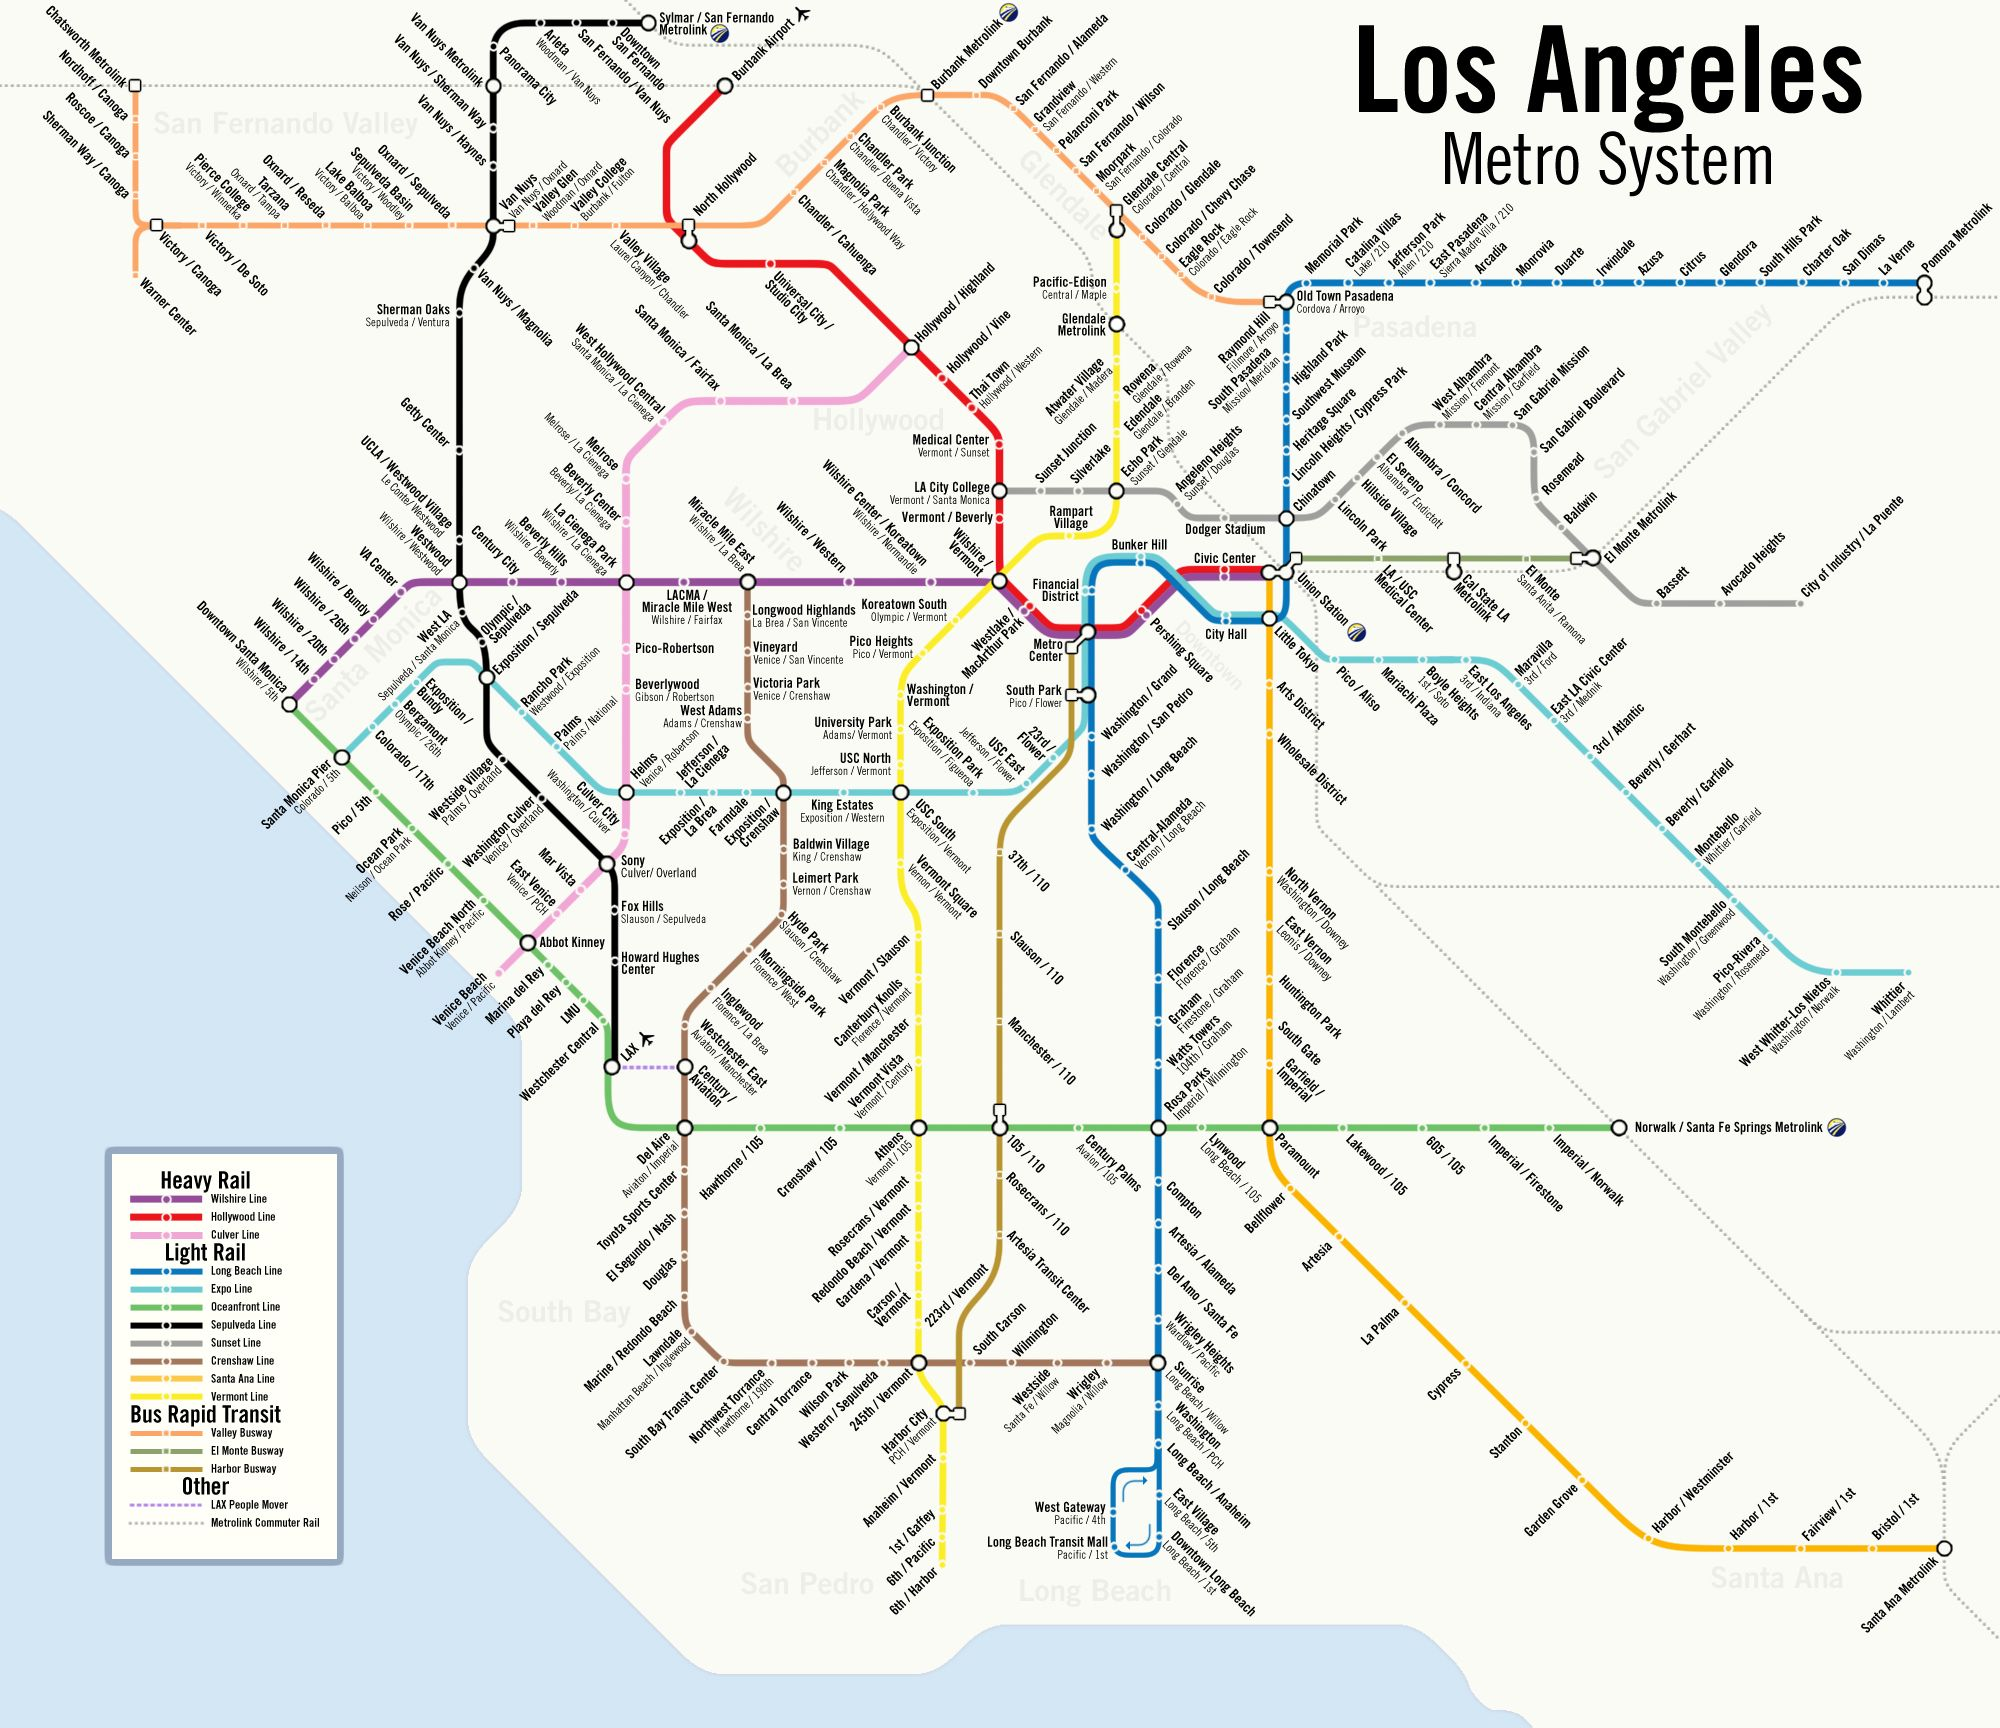 Los Angeles Metro Rail Station Map Of The Future YouTube LA Metro - Los angeles metro expansion map